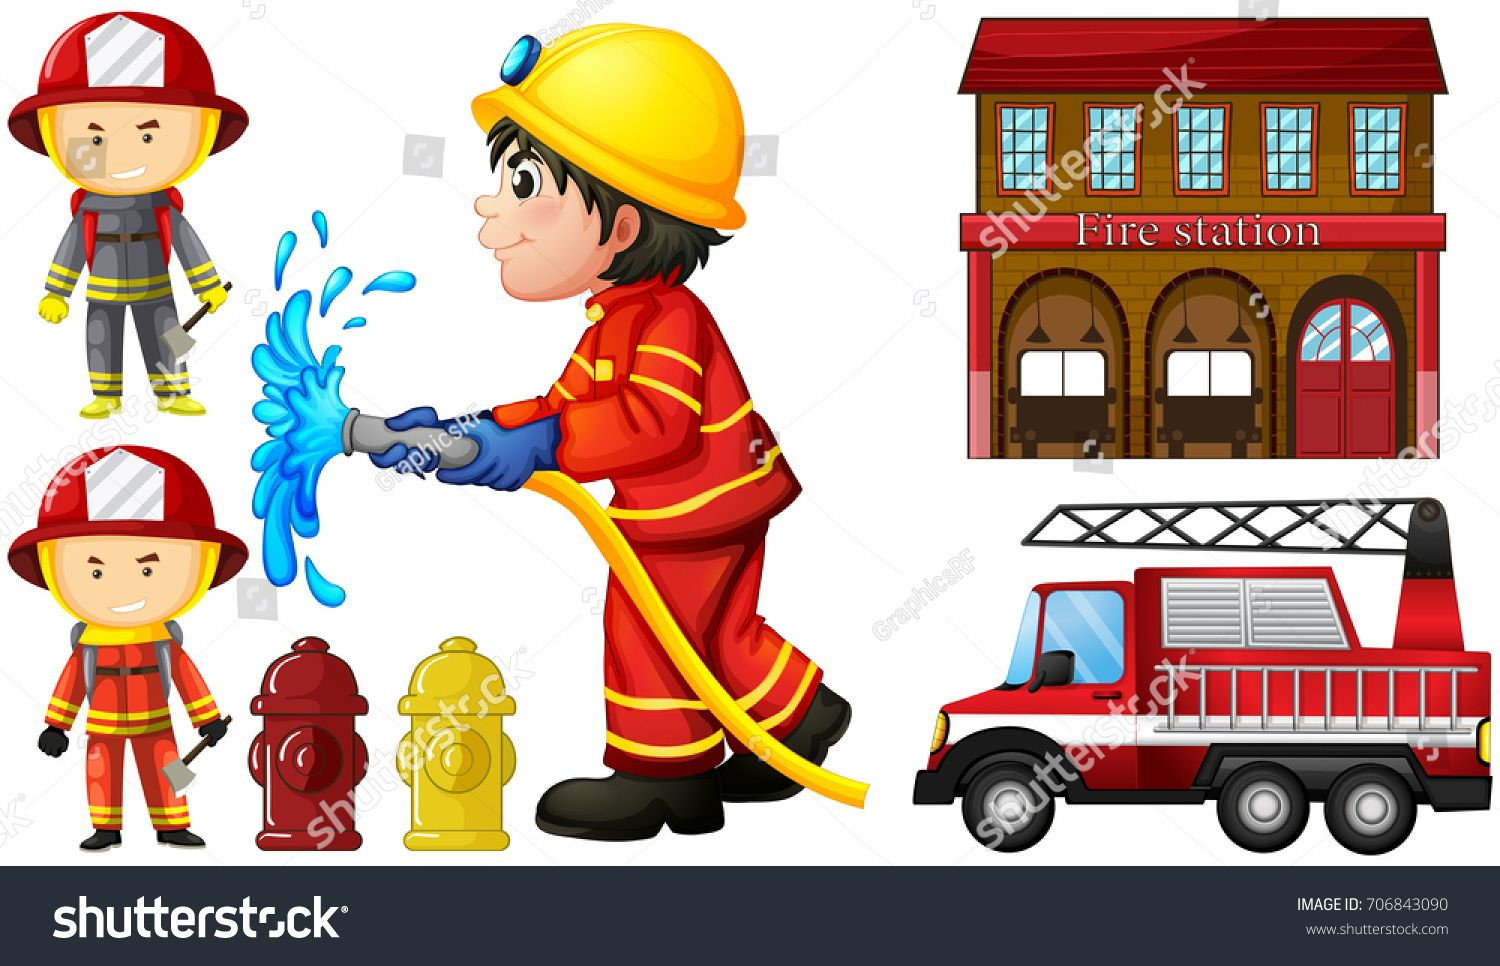 Firefighters And Fire Station Illustration Ad Sponsored Fire Firefighters Illustration Station In 2020 Fire Station Firefighter Illustration